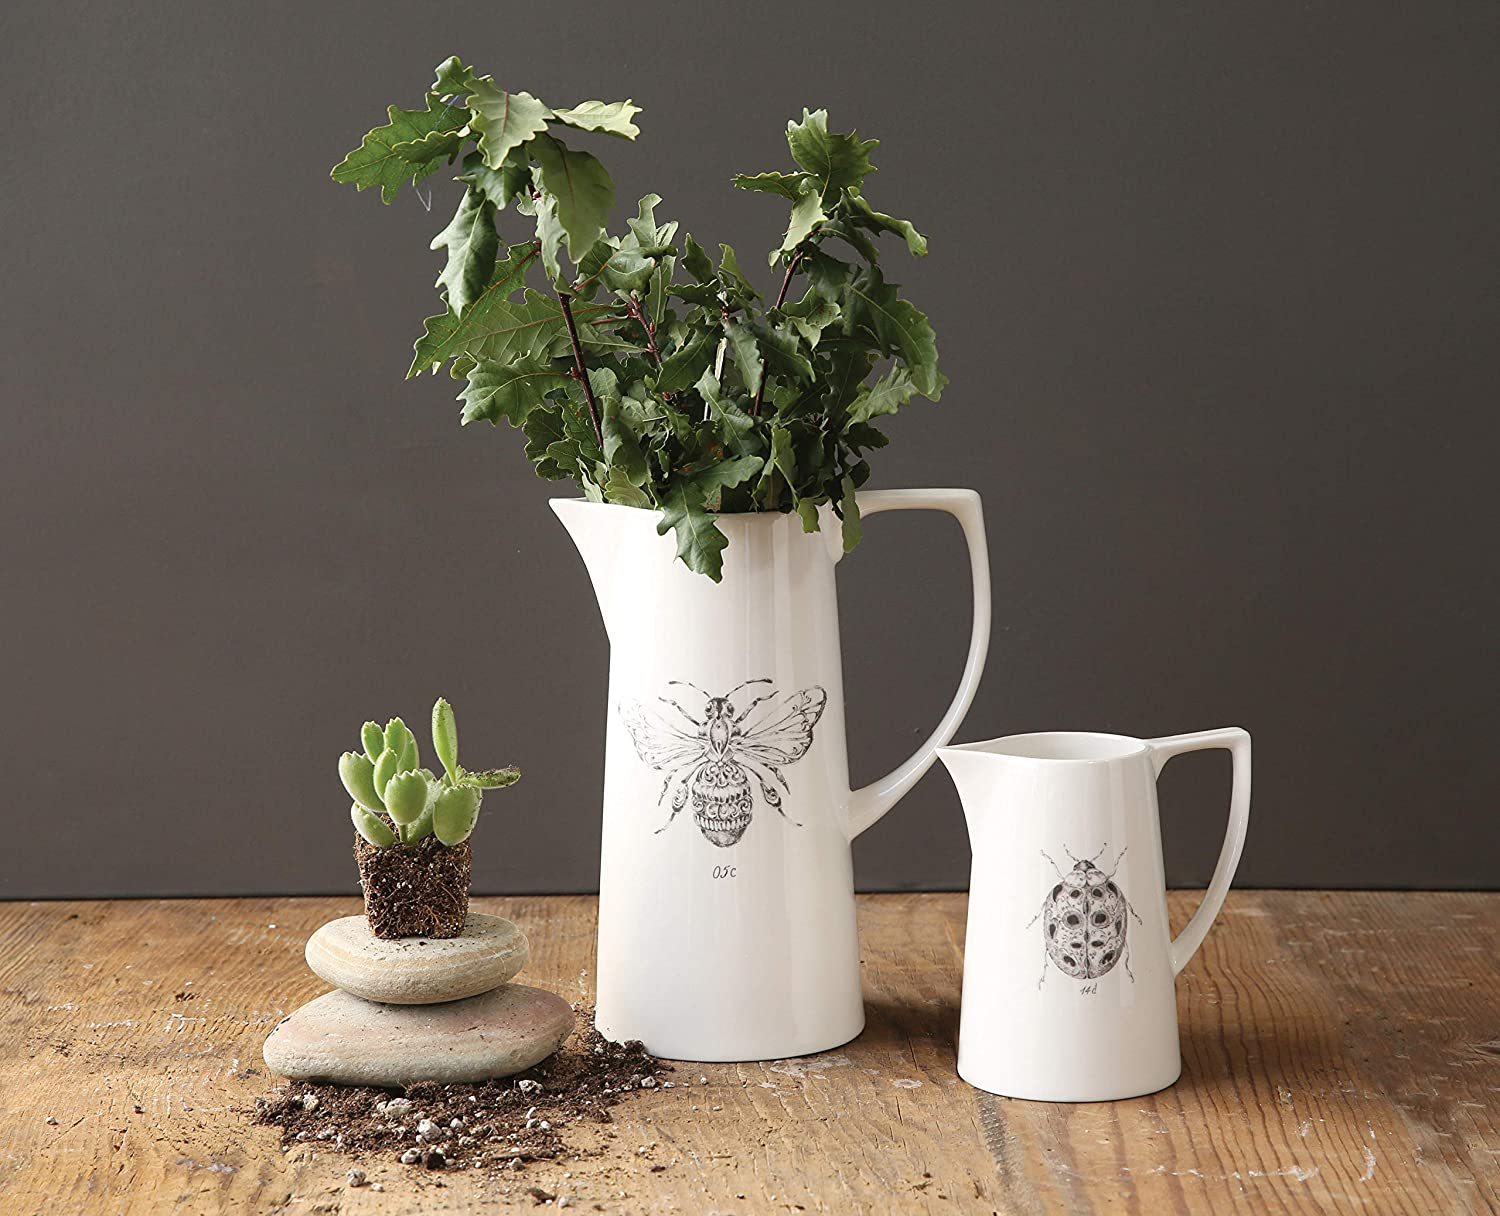 White ceramic bee pitcher has country French farmhouse charm and European country style for French inspired decorating.